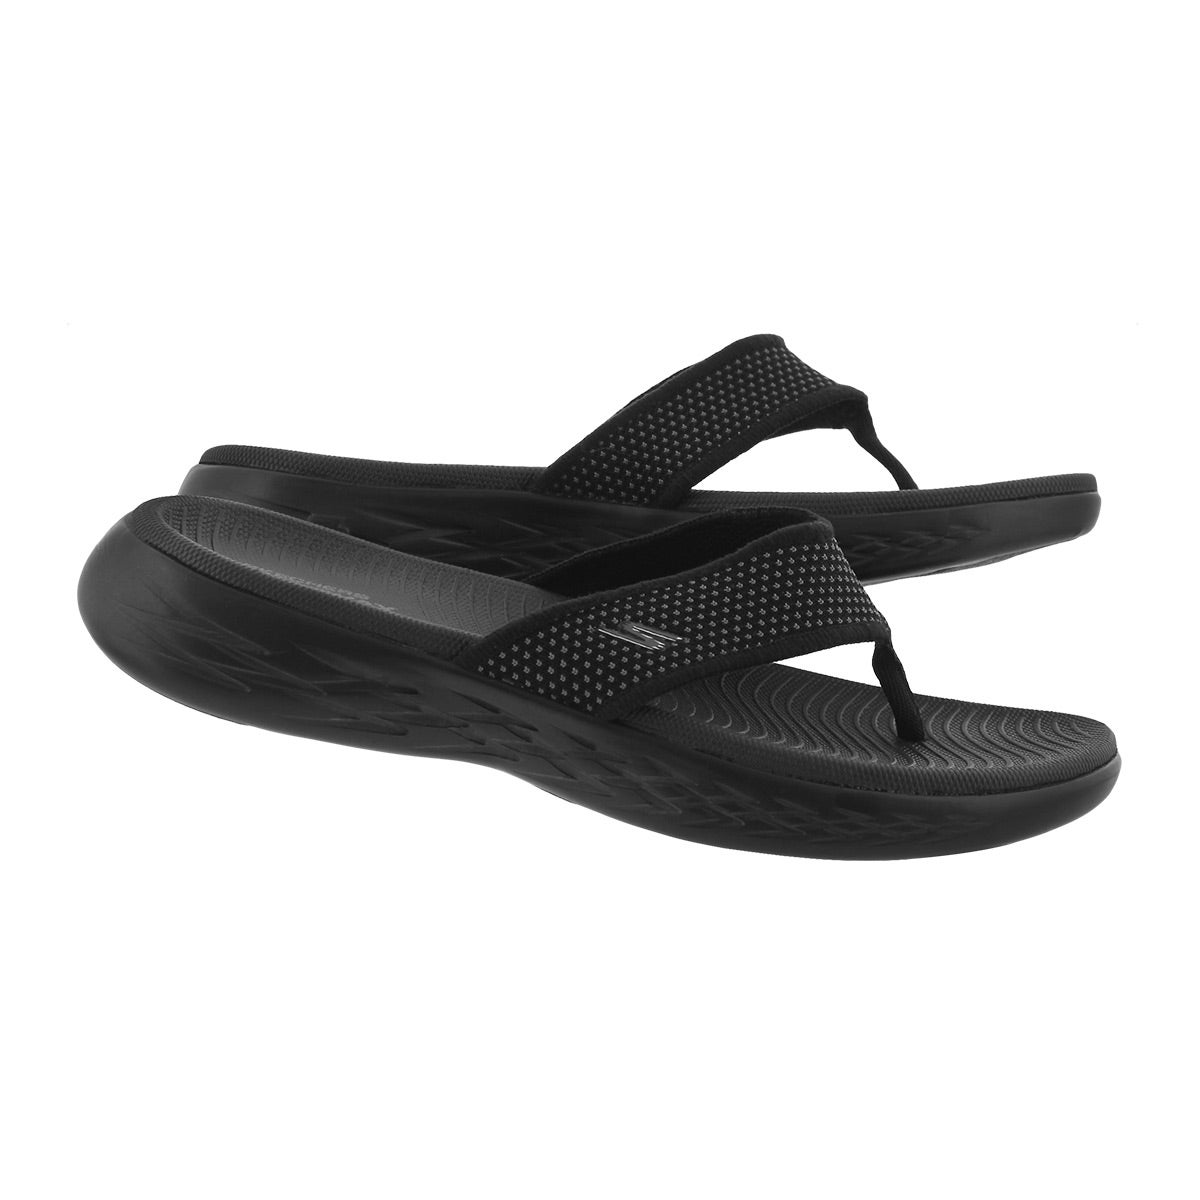 Lds On-The-Go 600 blk flip flop sndl